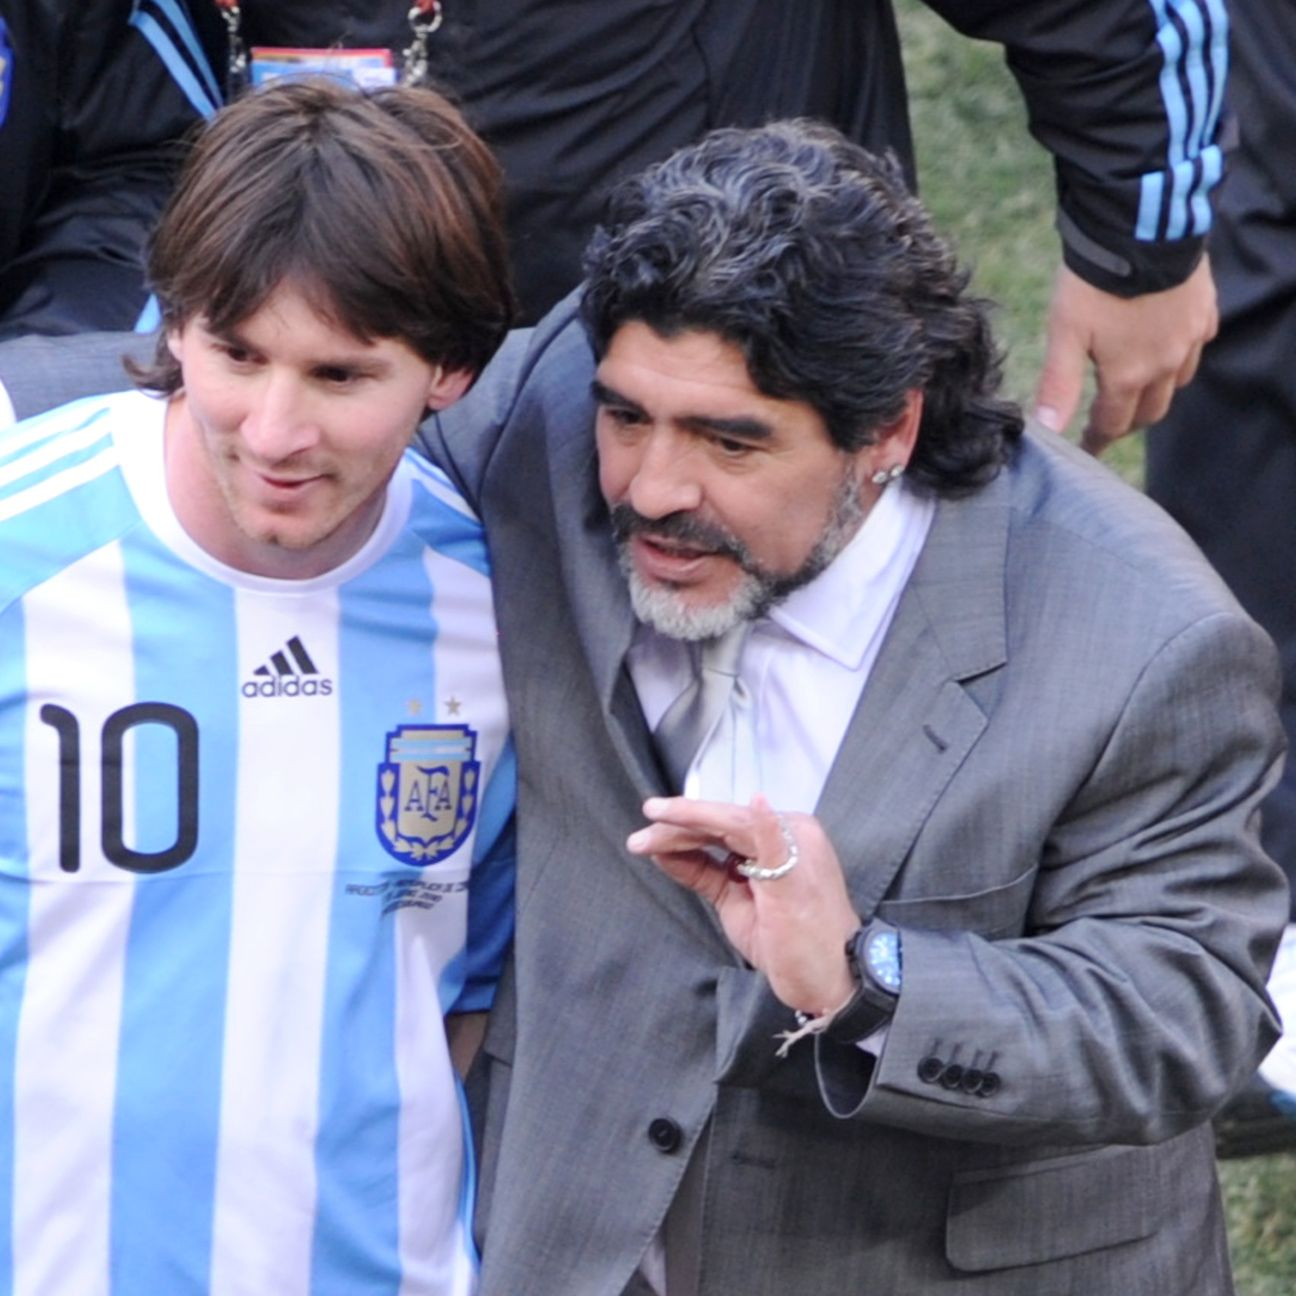 Two of the best No. 10s: Lionel Messi and Diego Maradona.